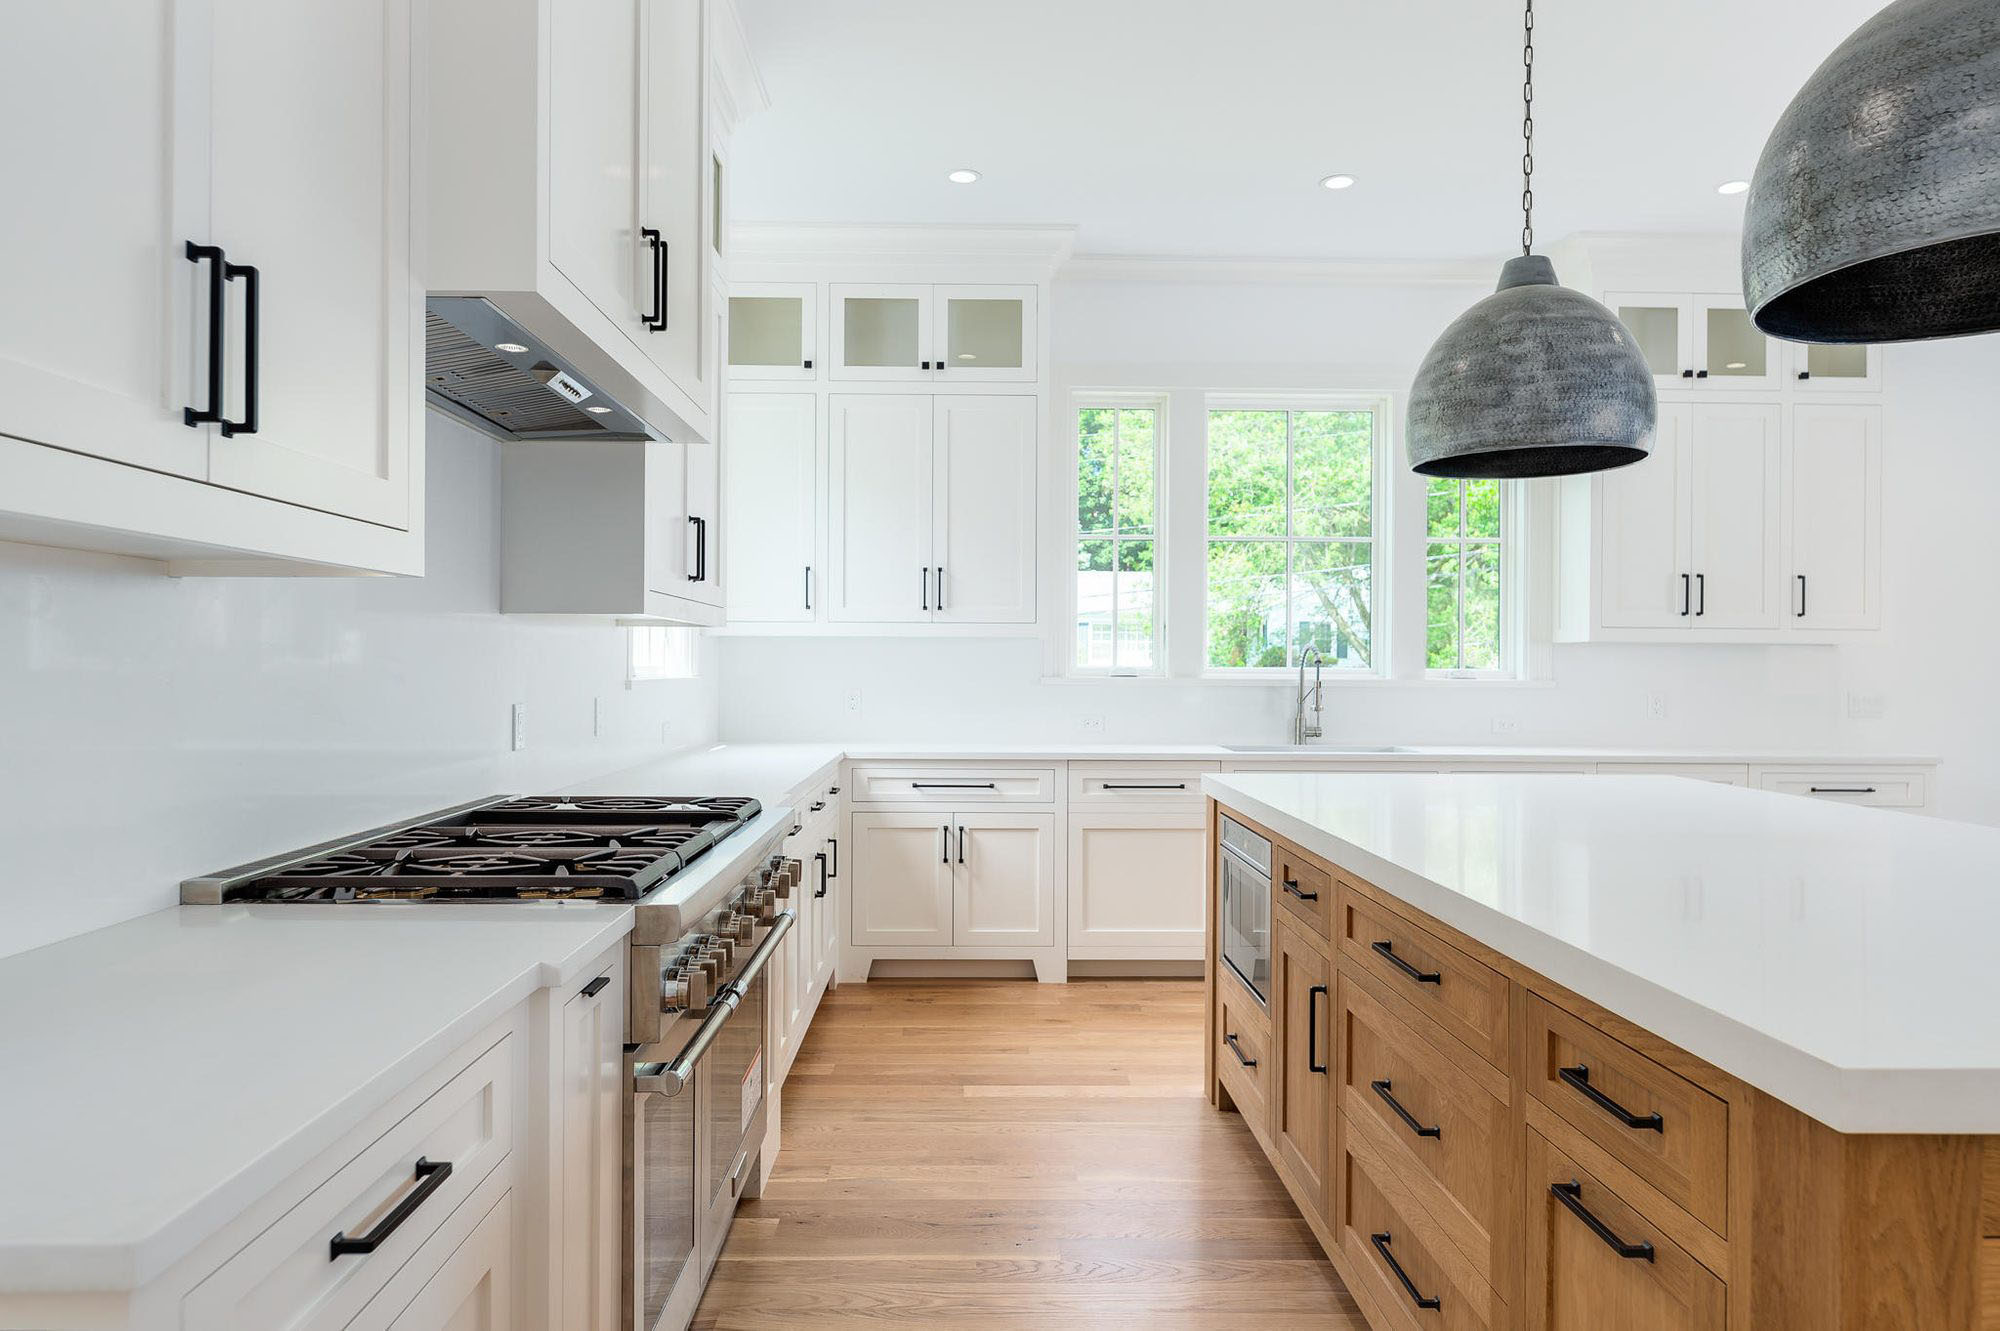 White shaker style cabinetry with a white quartz solid slab backsplash and natural wood island.